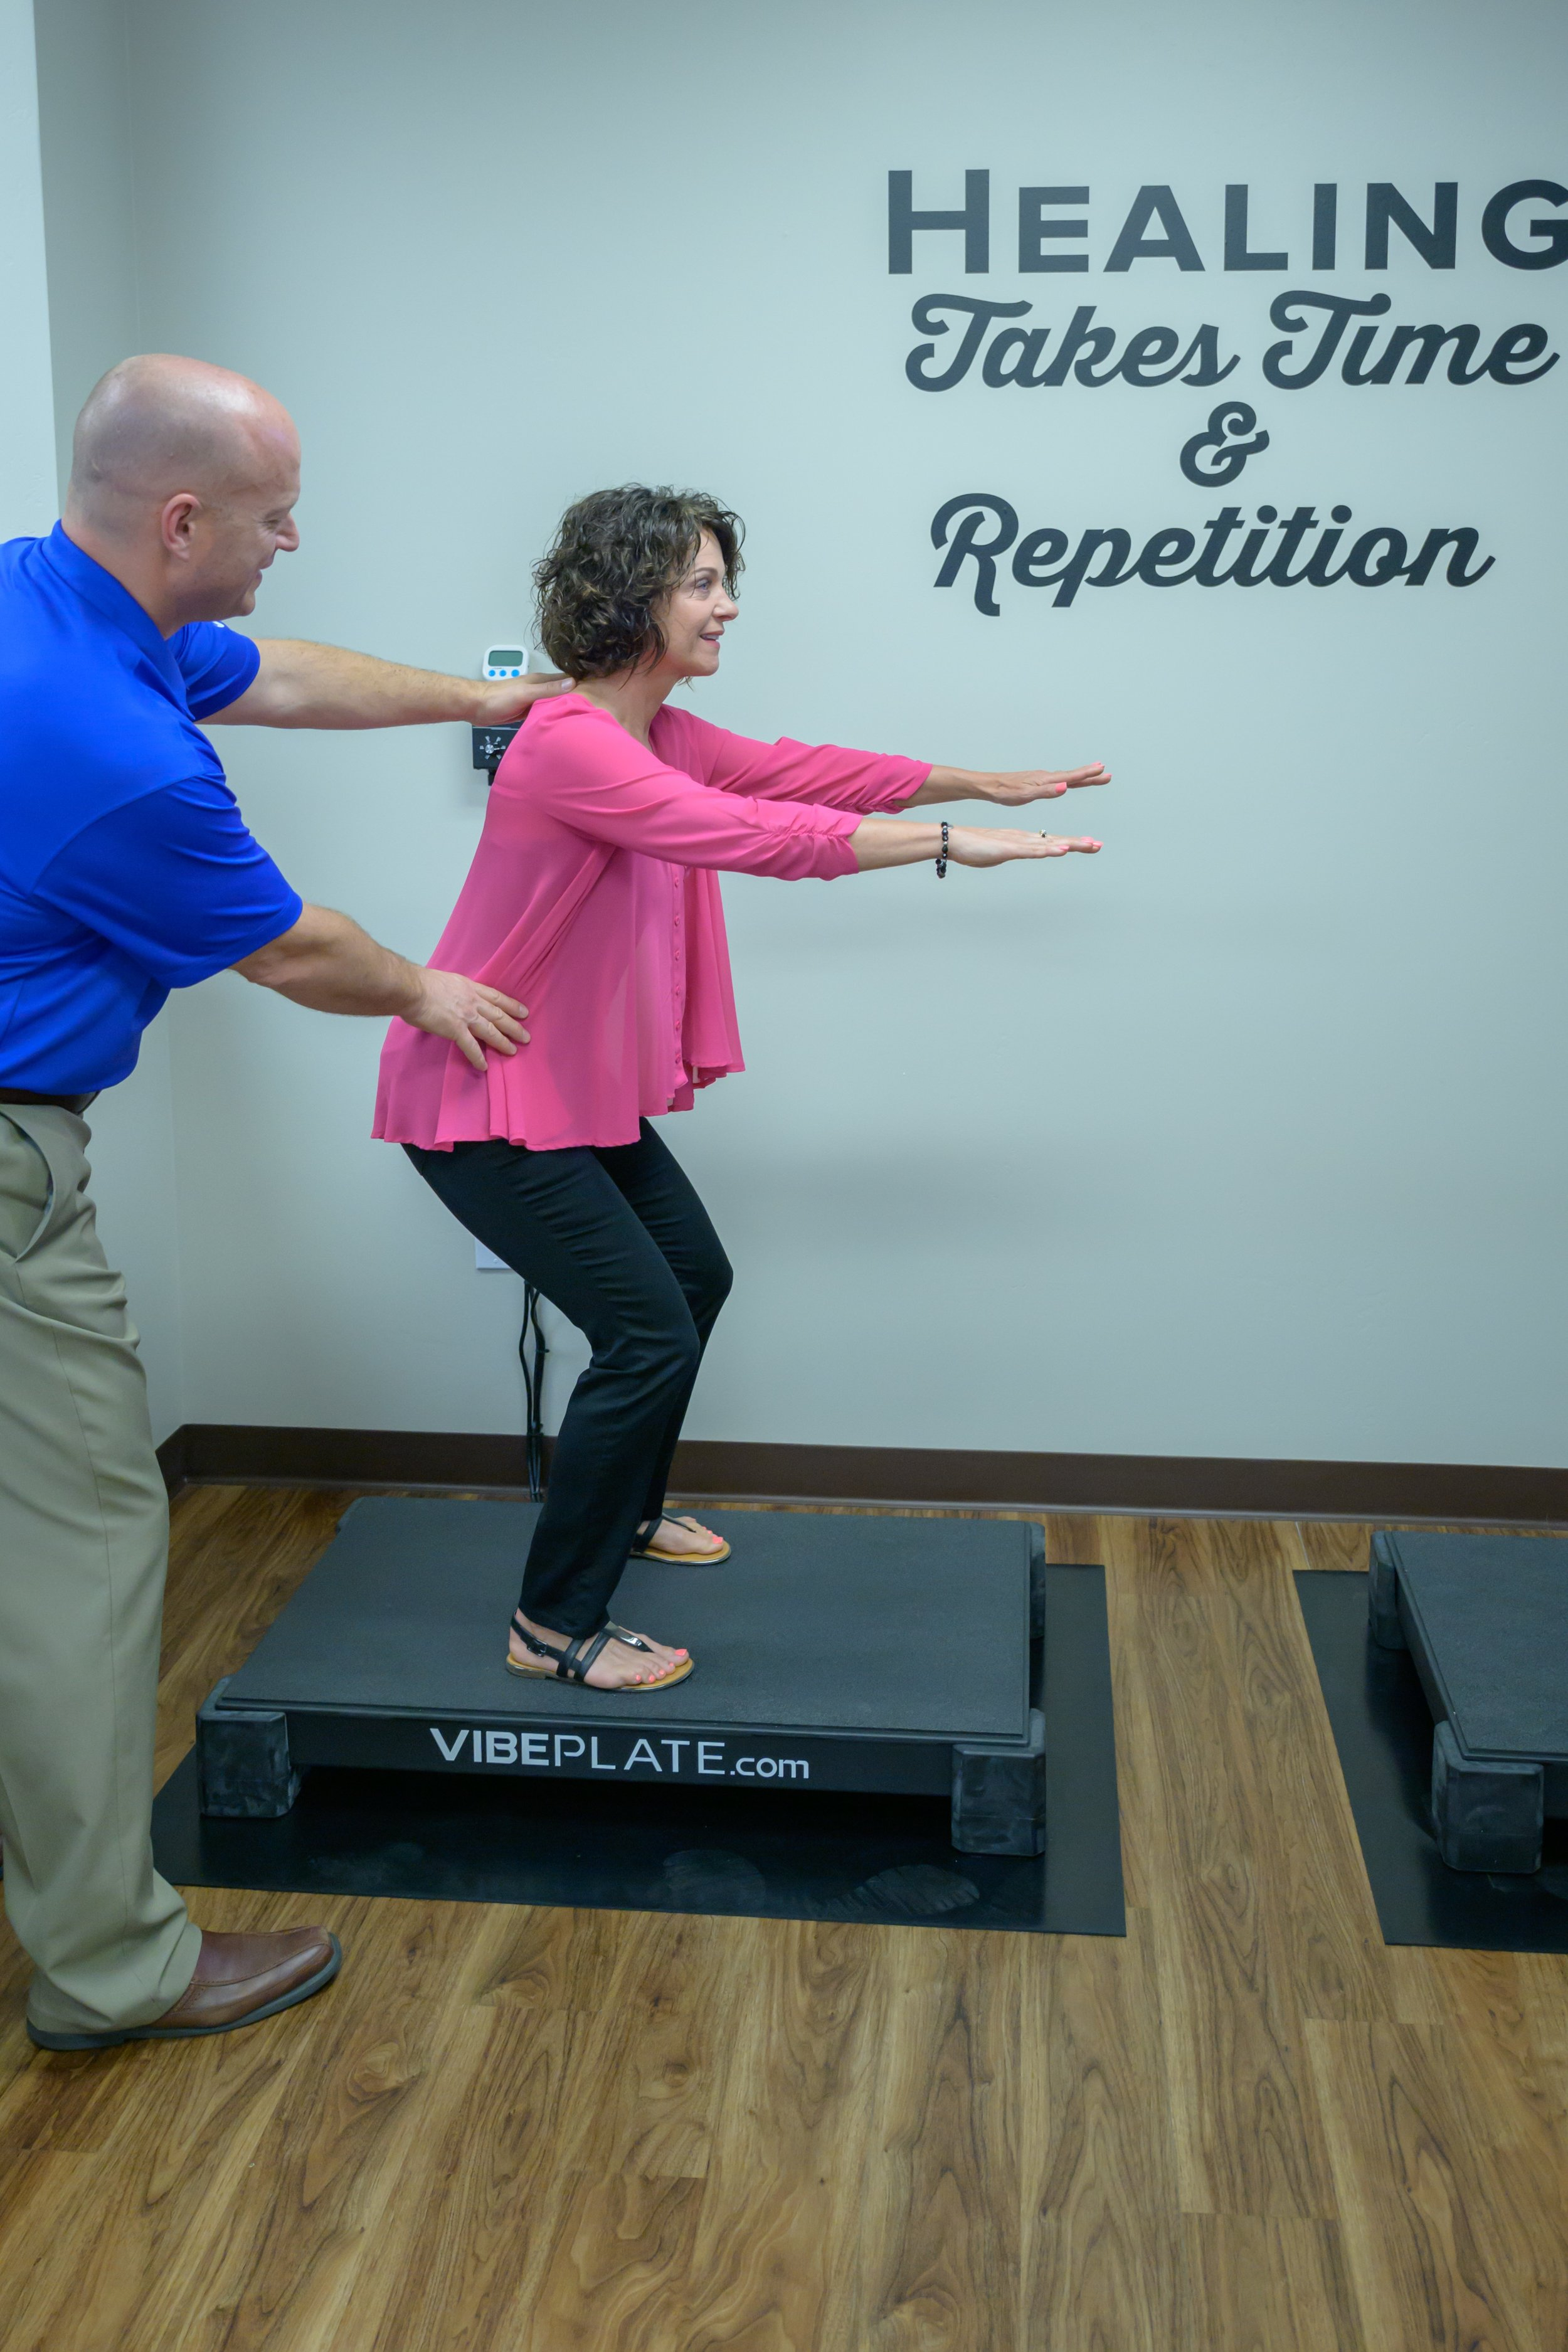 Therapeutic exercise - Therapeutic exercises and postural correction provide stabilization of the spine through improvement of muscle tone, balance and circulation. These procedures become even more effective using our VibePlate whole body vibration machines, which gently force your muscles to contract and relax repeatedly, improving muscle tone and increasing circulation, flexibility and range of motion. This improves the health of deeper stabilizing postural muscles.